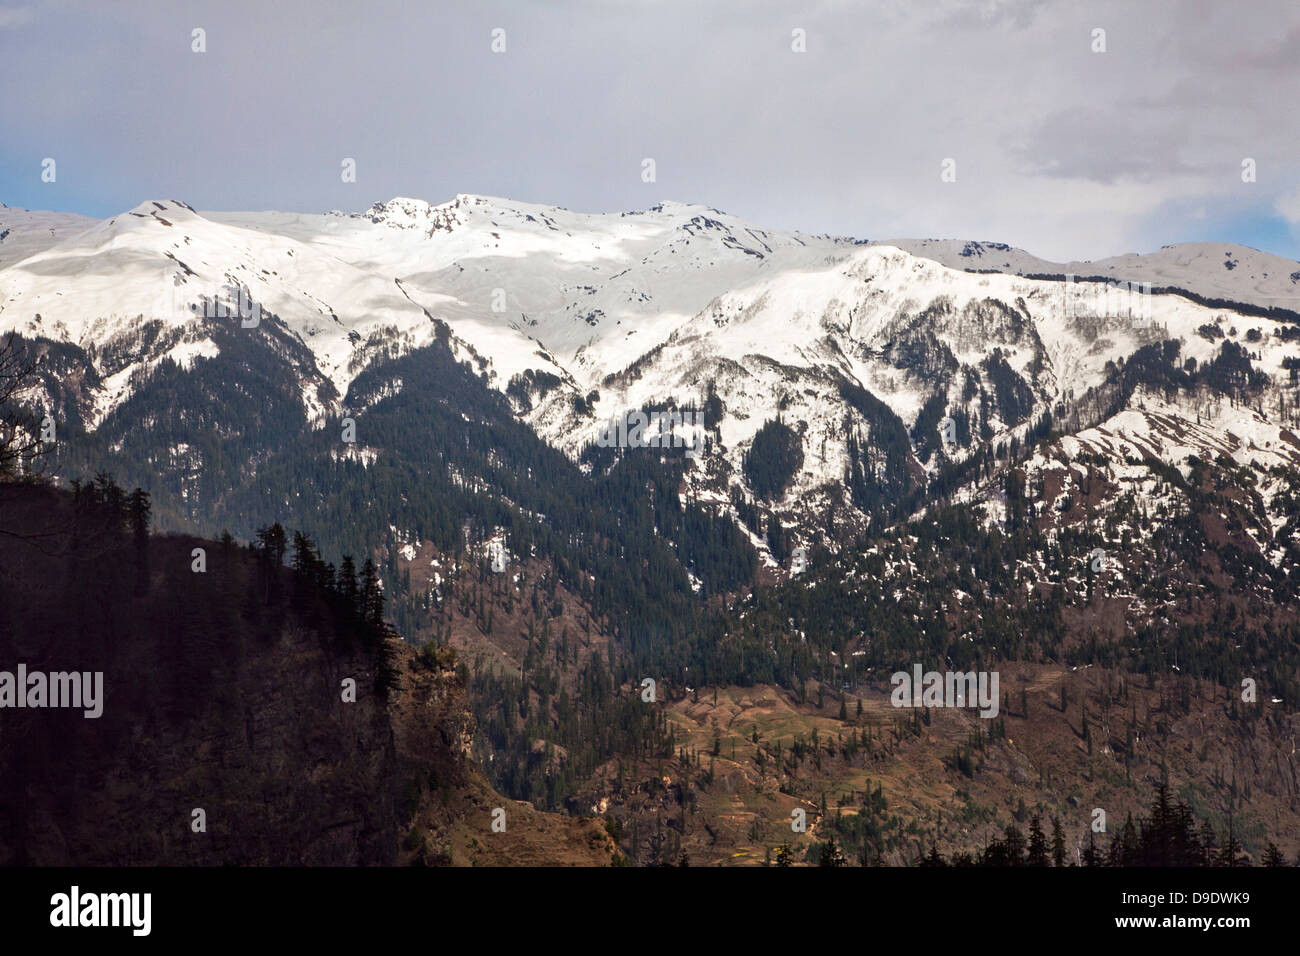 Snowcapped mountain mange, Manali, Himachal Pradesh, India - Stock Image